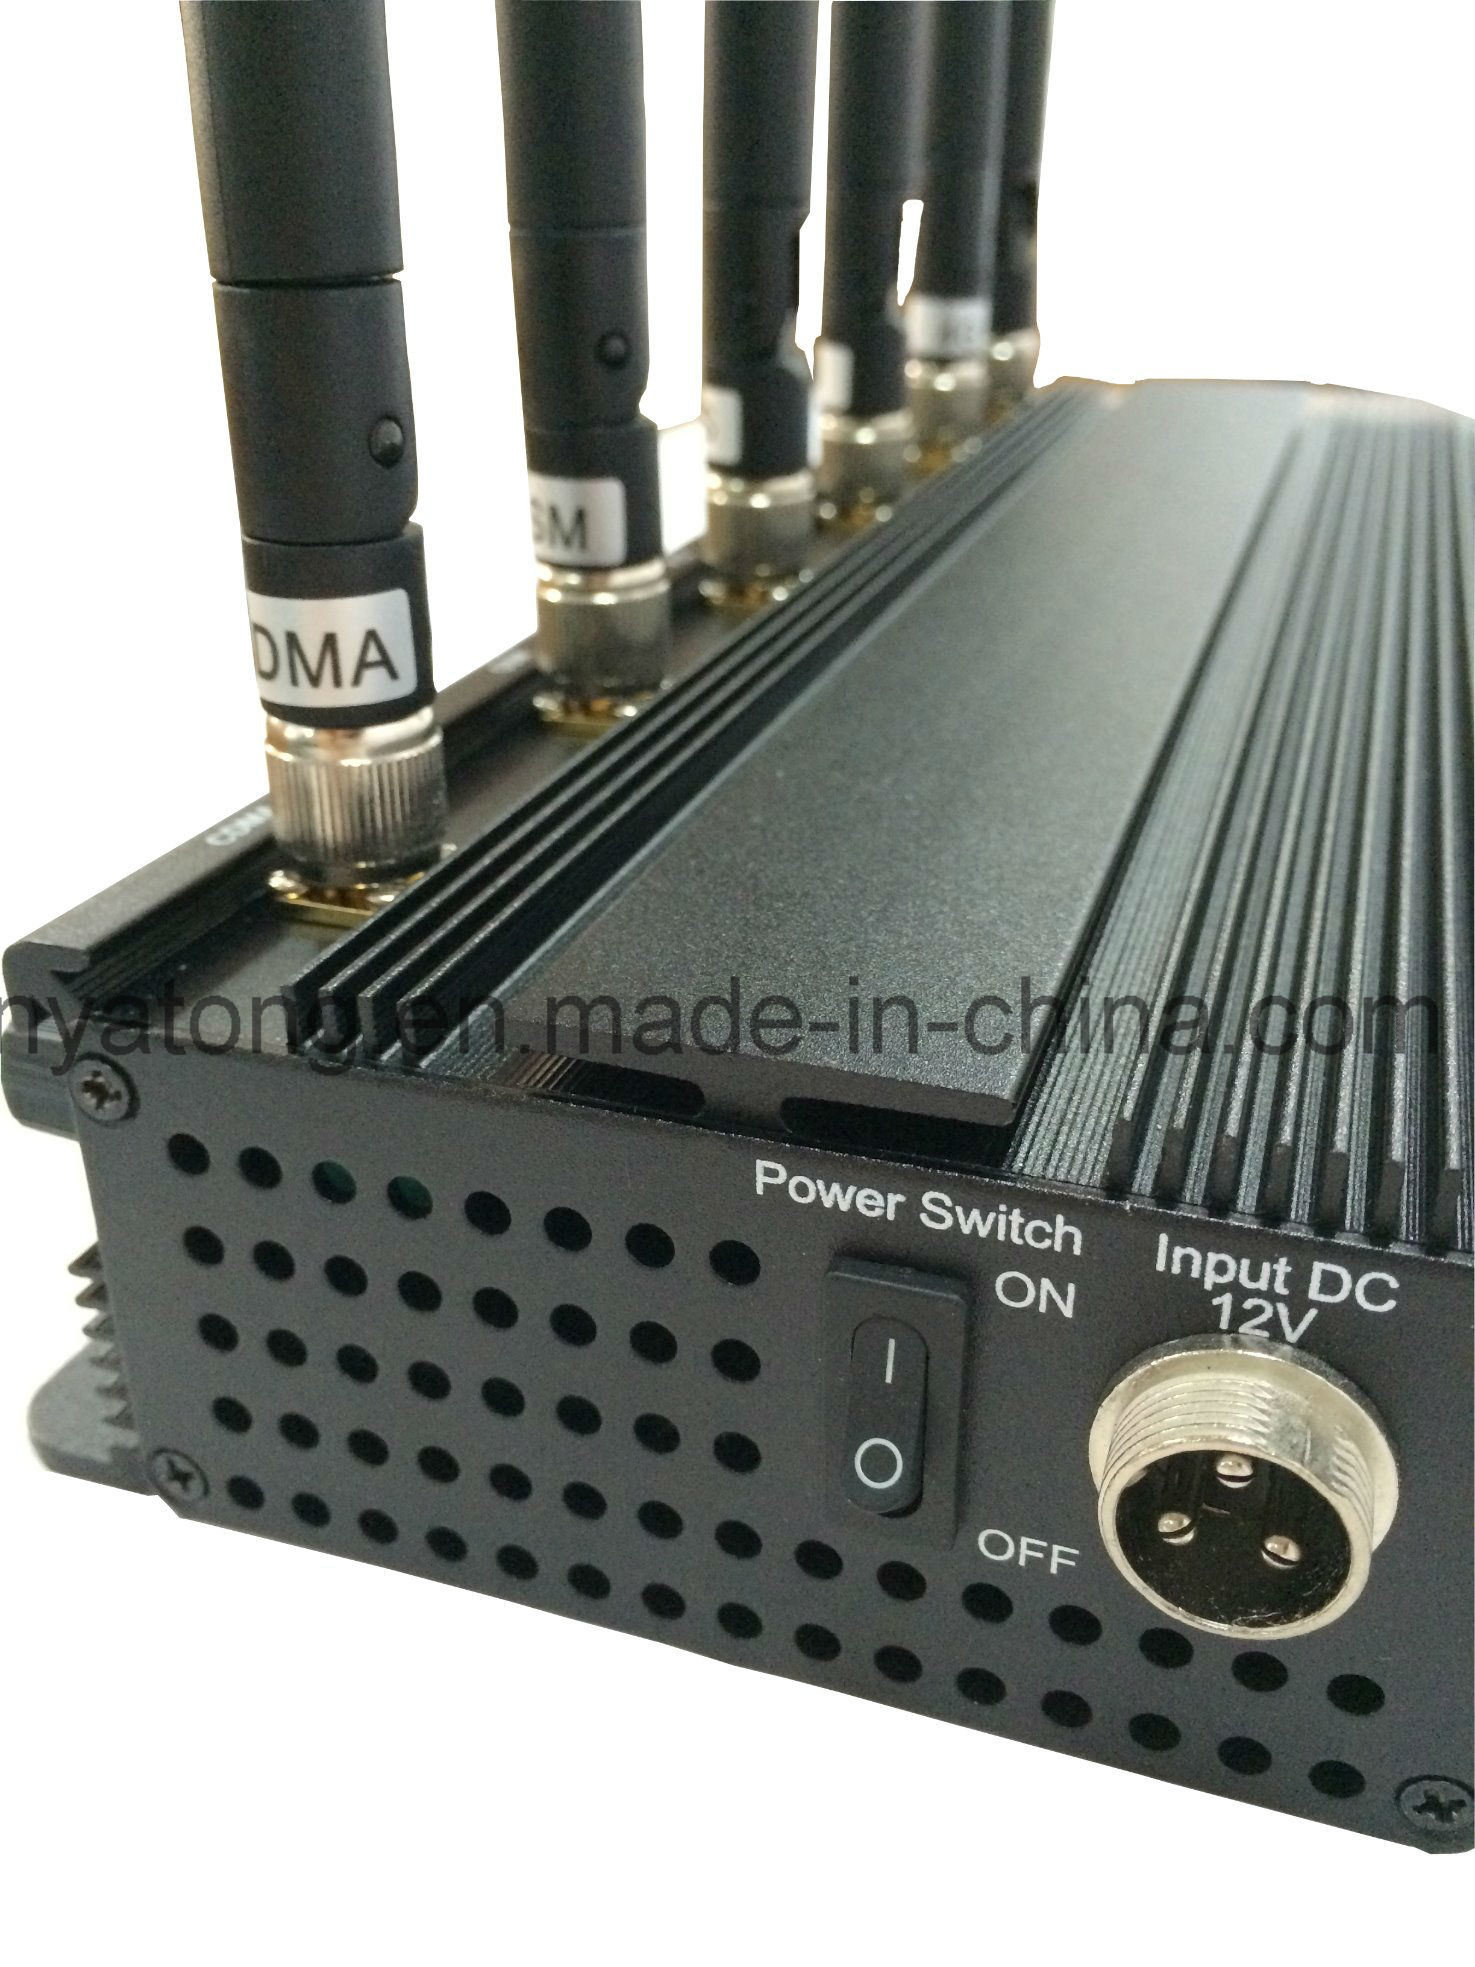 Adjustable 15W 3G/4G Cellphone Jammer with 6 Powerful Antenna